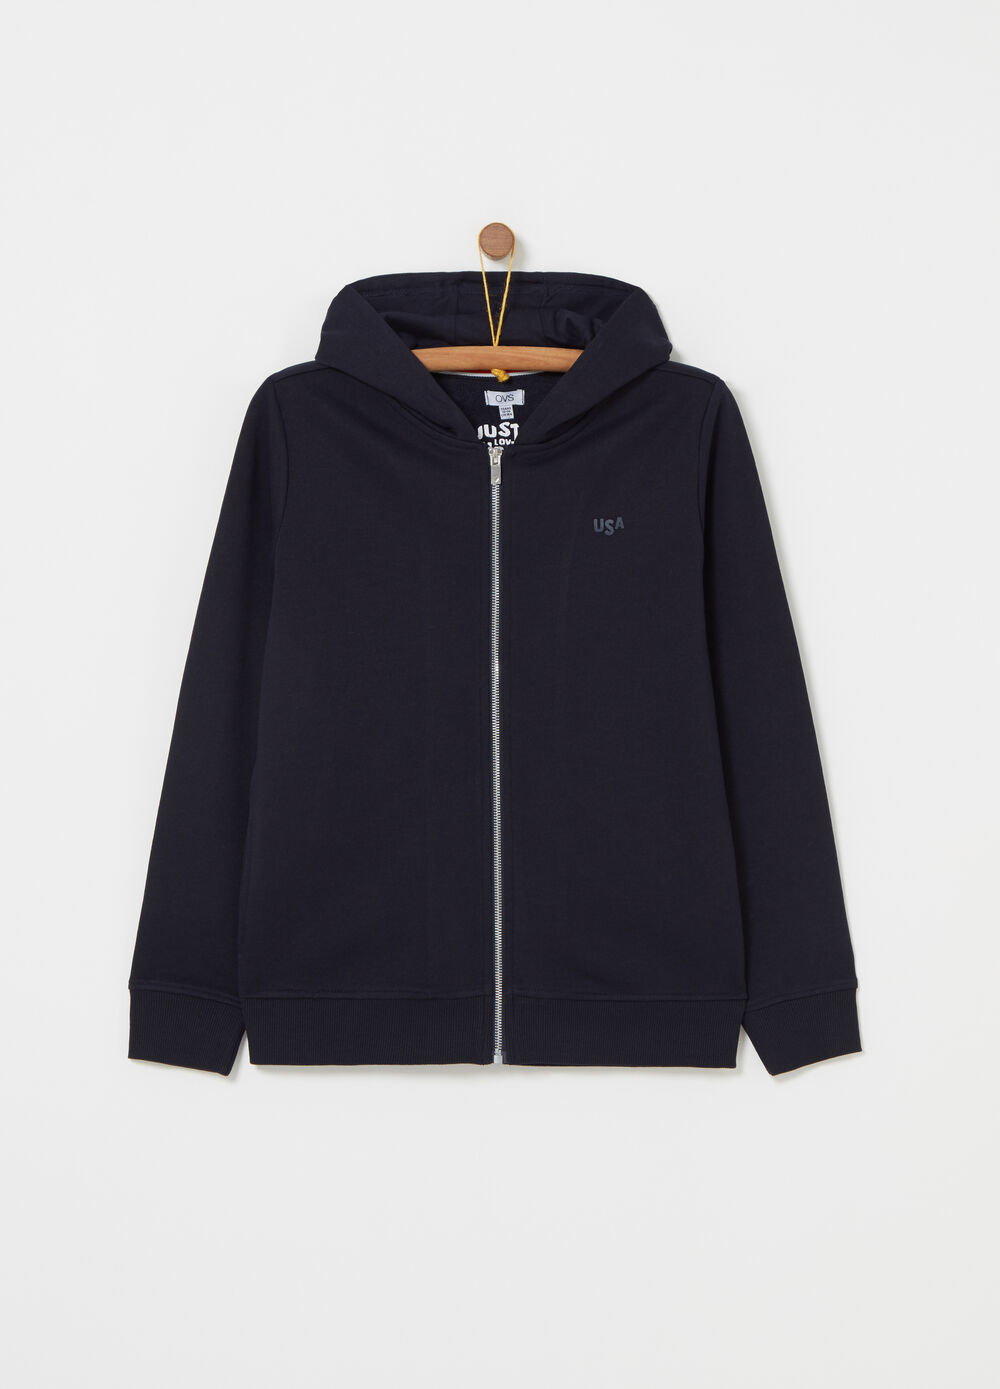 Sweatshirt with hood, ribbing and print